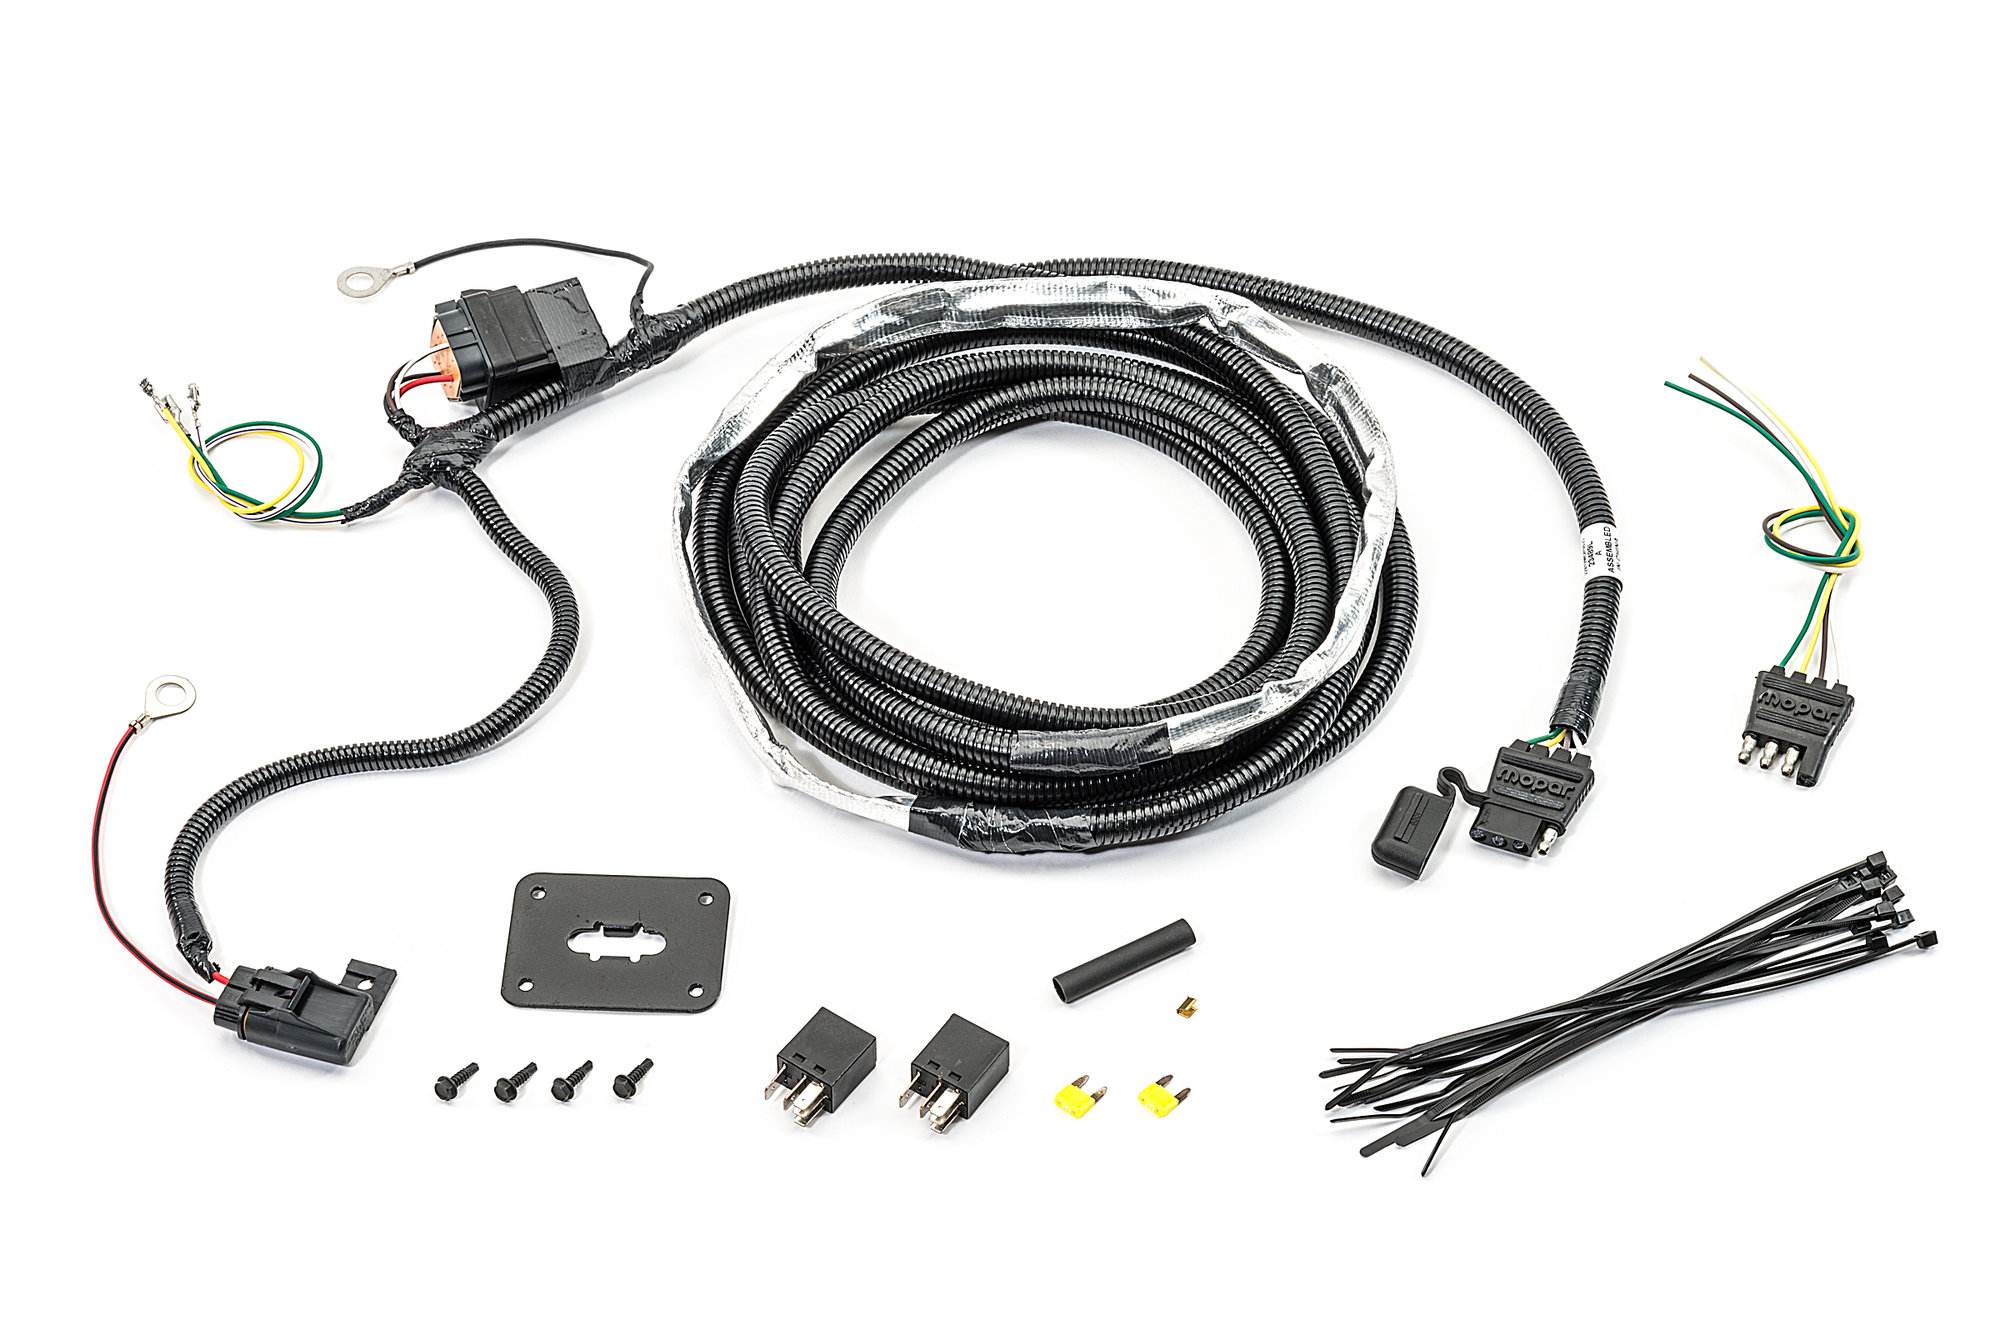 hight resolution of mopar 82211149ad 4 way flat hitch wiring harness for 07 09 jeep grand cherokee wk quadratec